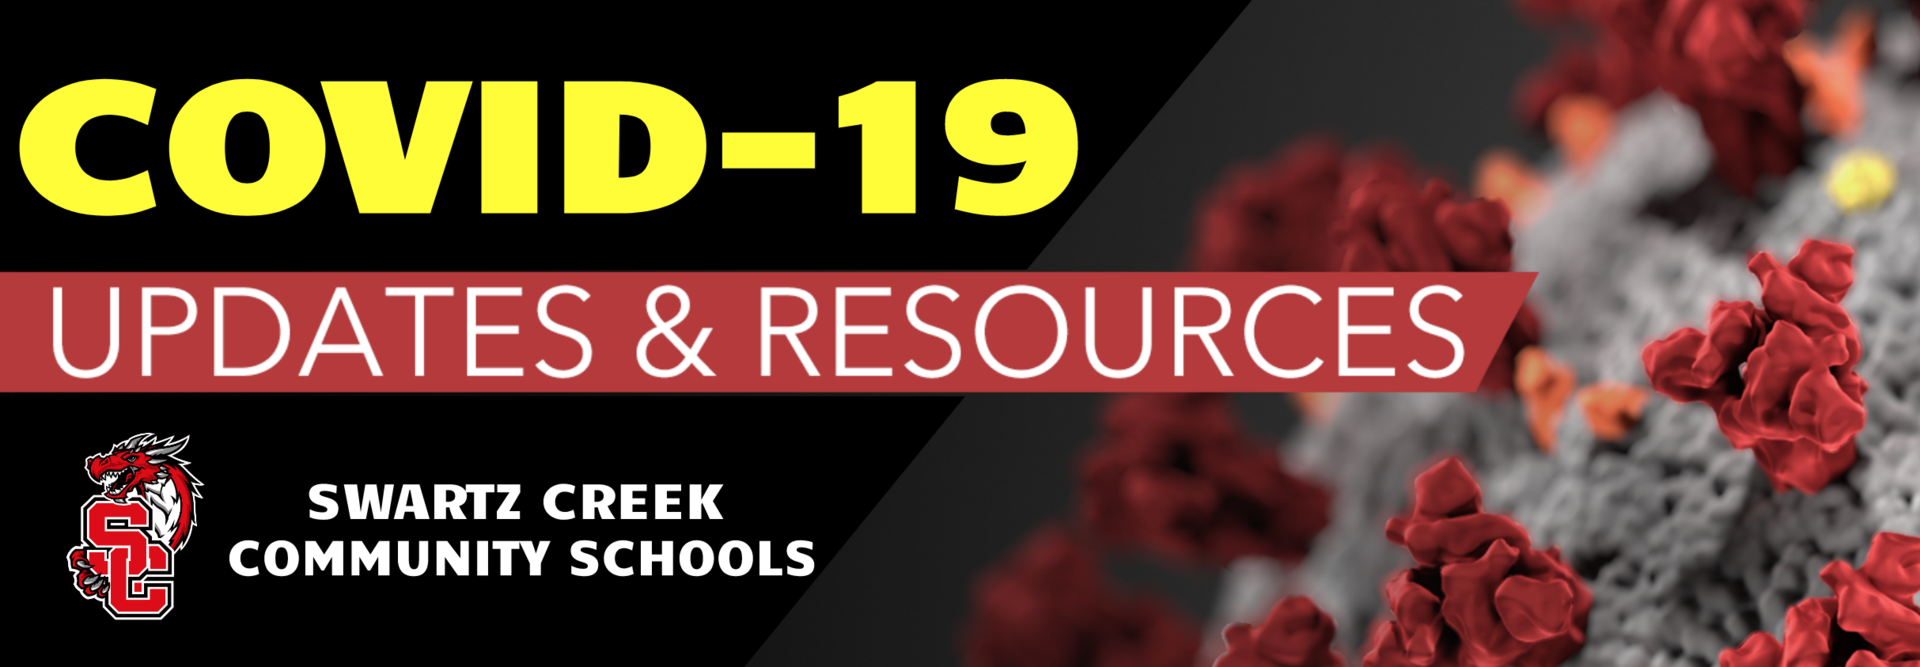 Banner with message: COVID-19 Updates and Resources from Swartz Creek Community Schools